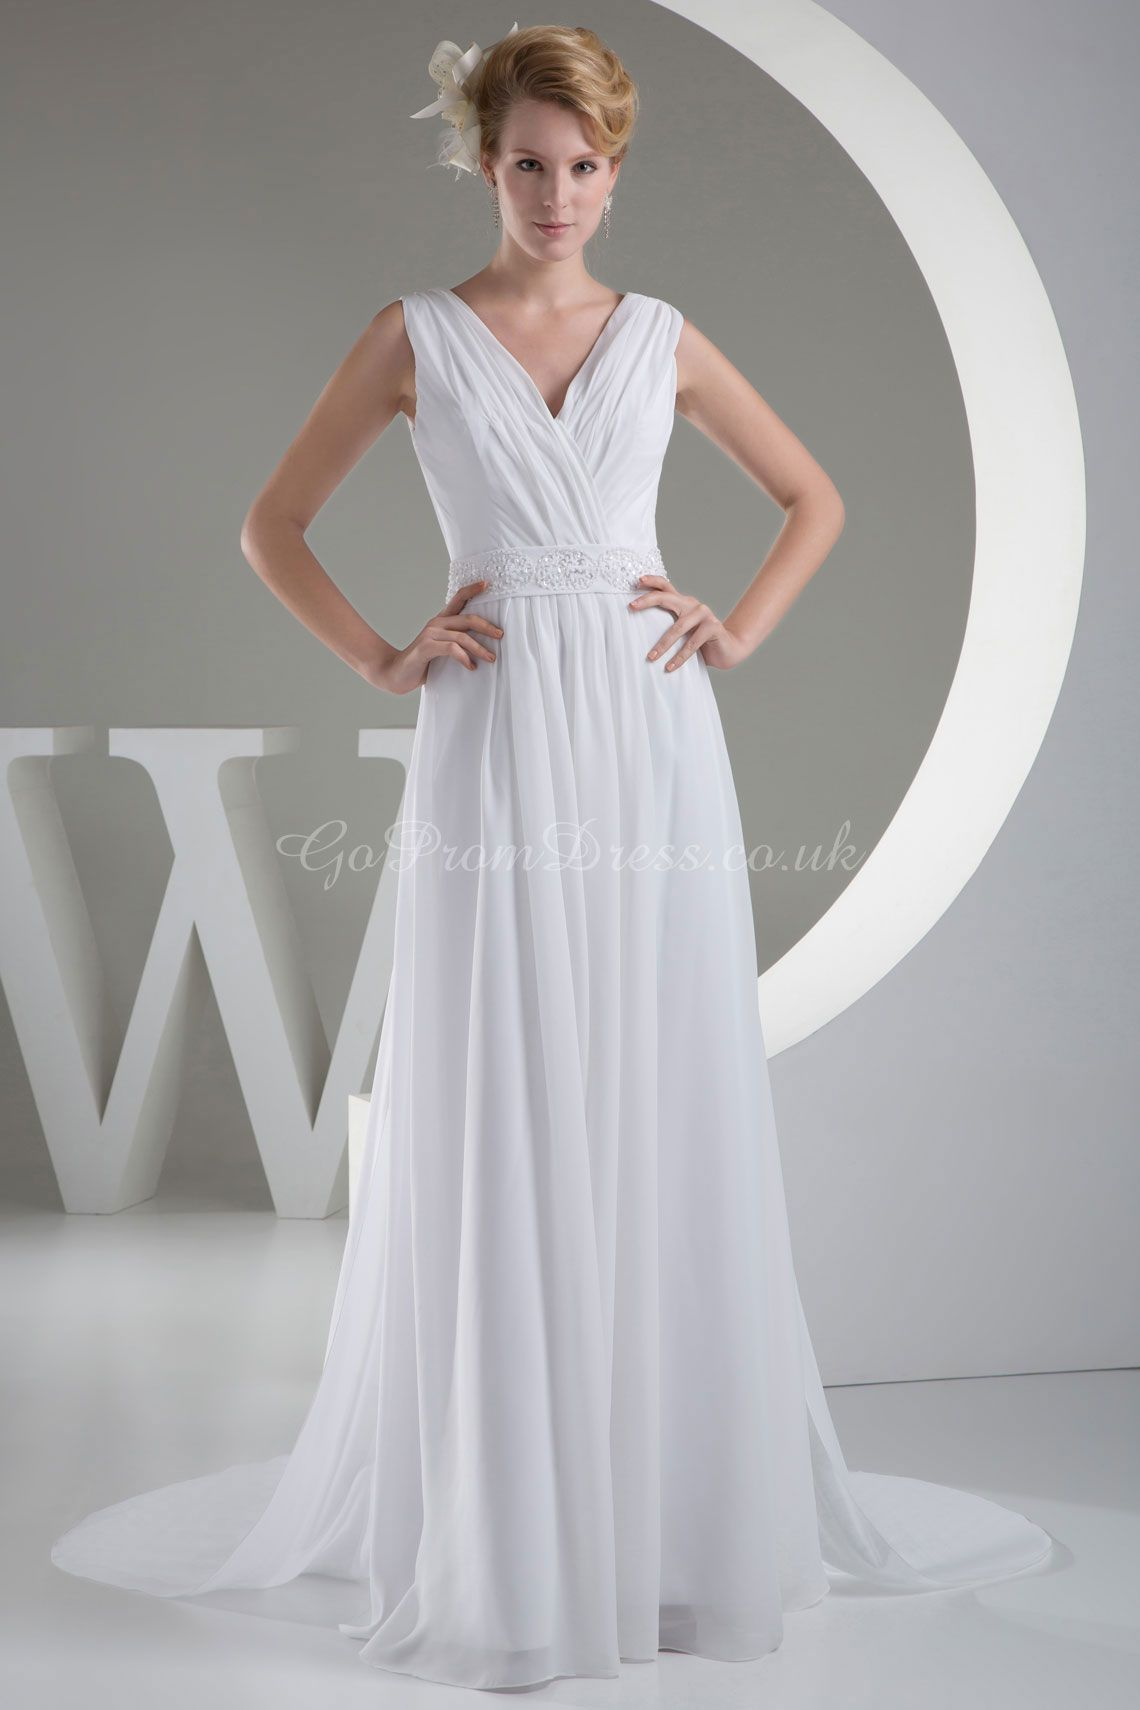 Grecian style wedding dress iud love it with a more defined high